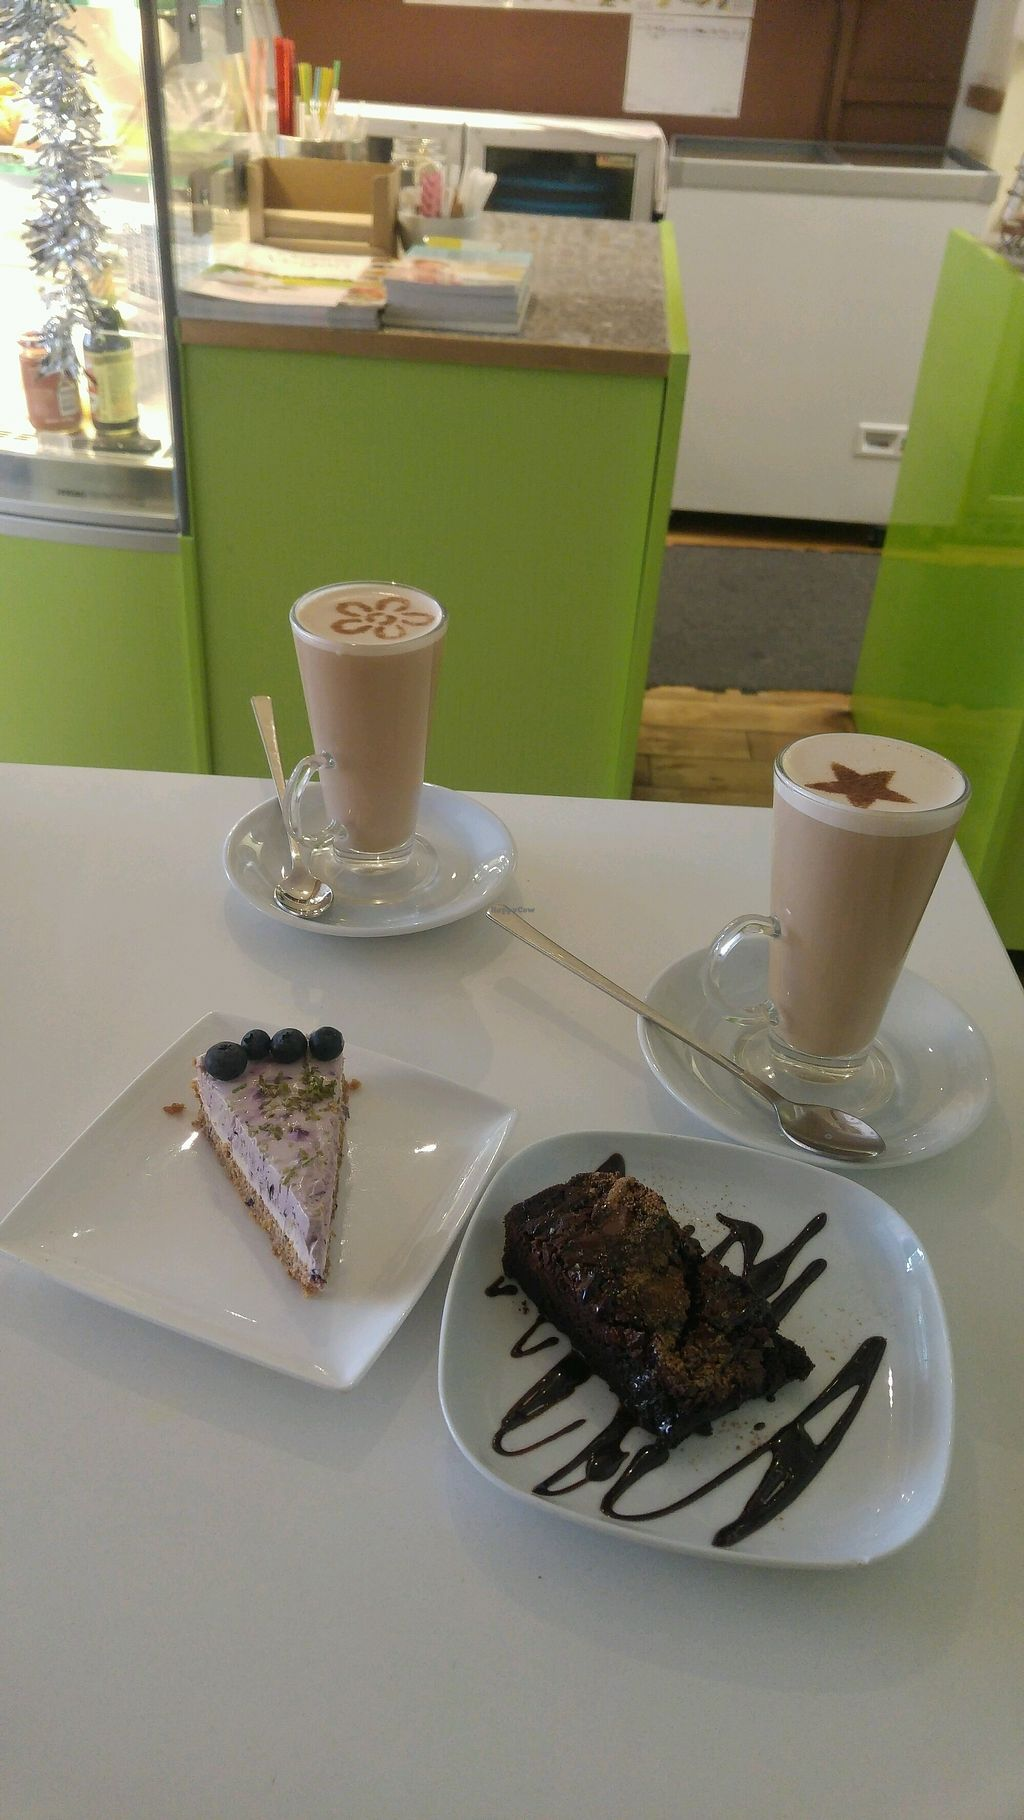 "Photo of Loving Hut - North Laine  by <a href=""/members/profile/BPvegan"">BPvegan</a> <br/>vegan salted caramel brownie, cheesecake and 2 chai lattes <br/> January 2, 2018  - <a href='/contact/abuse/image/57500/342115'>Report</a>"